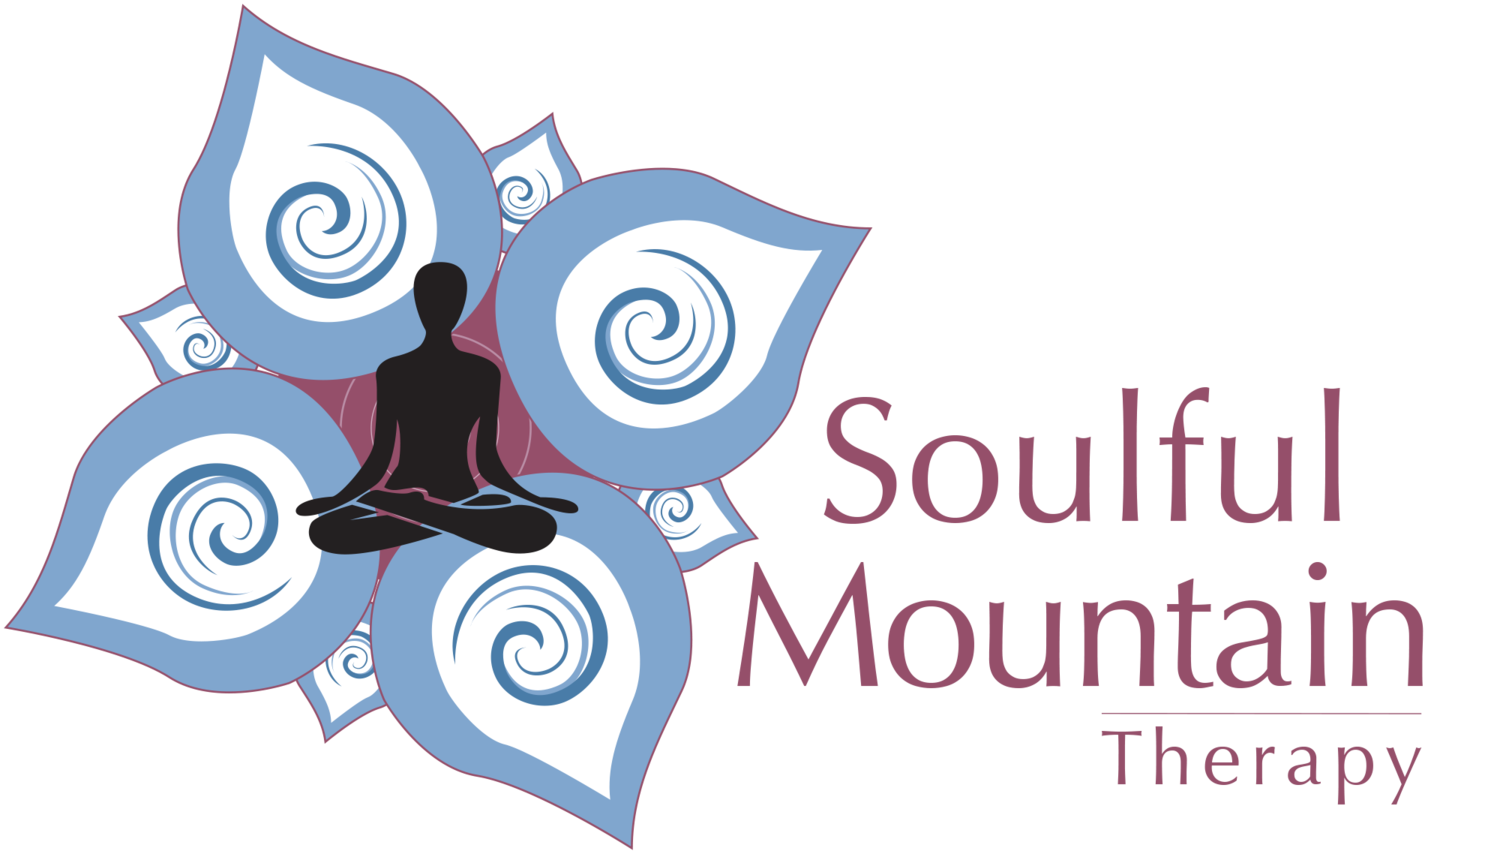 Soulful Mountain Therapy